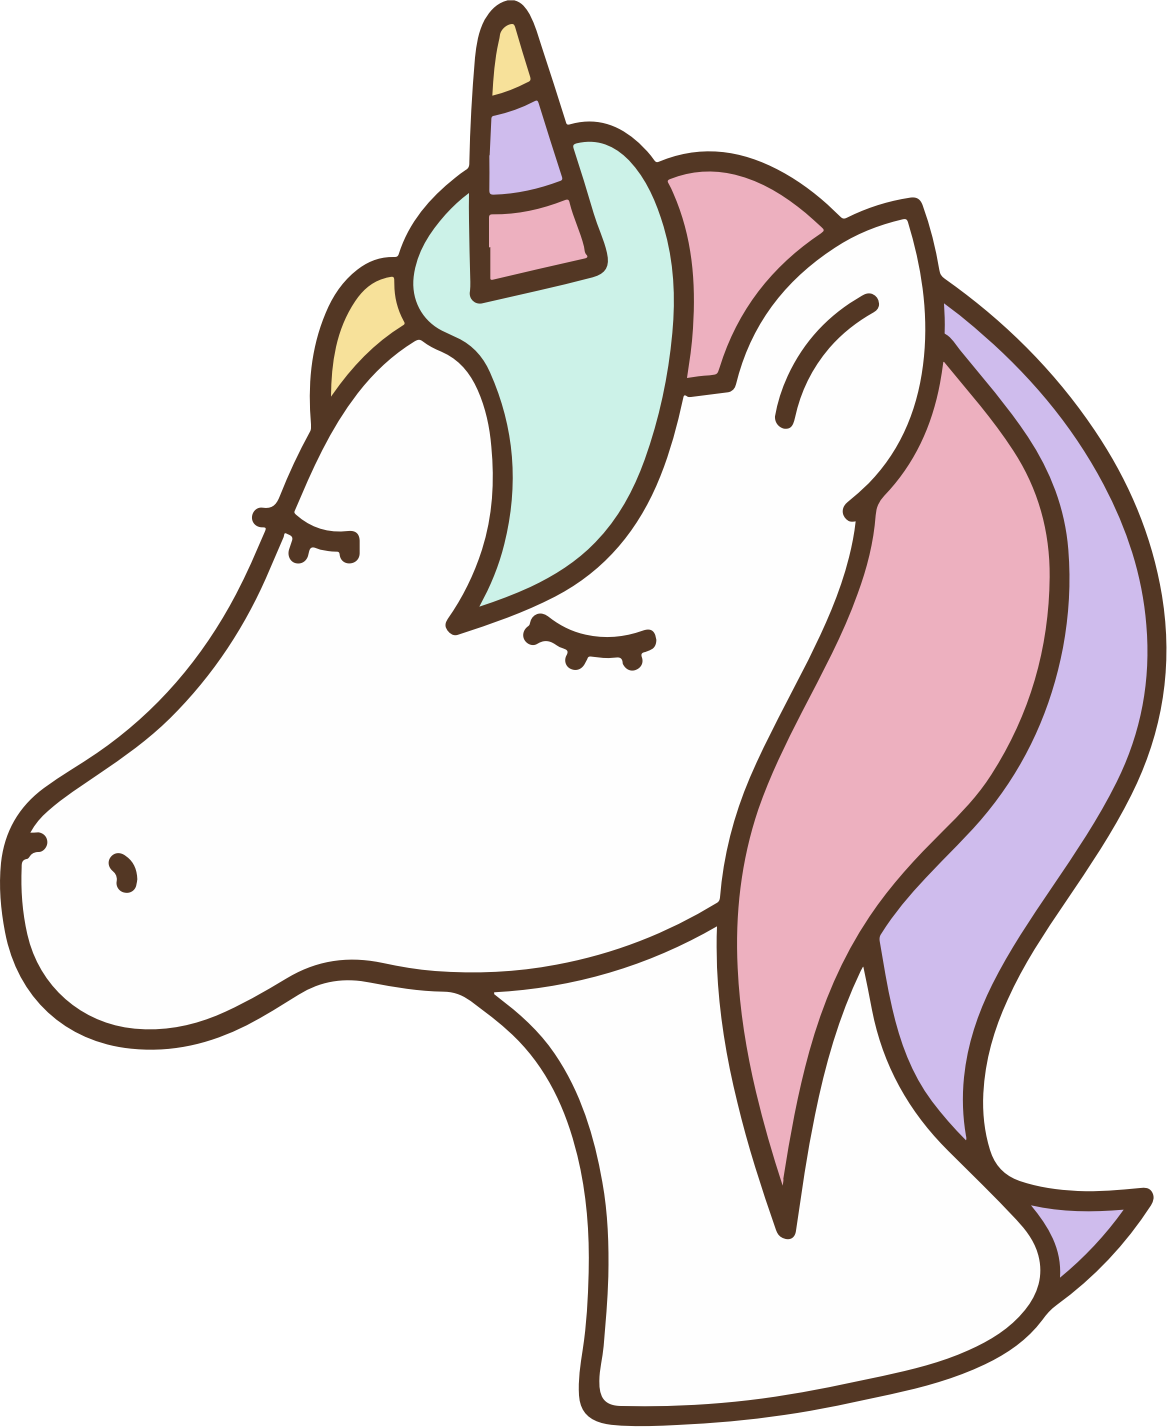 Nicorn clipart cute. Unicorn head big image